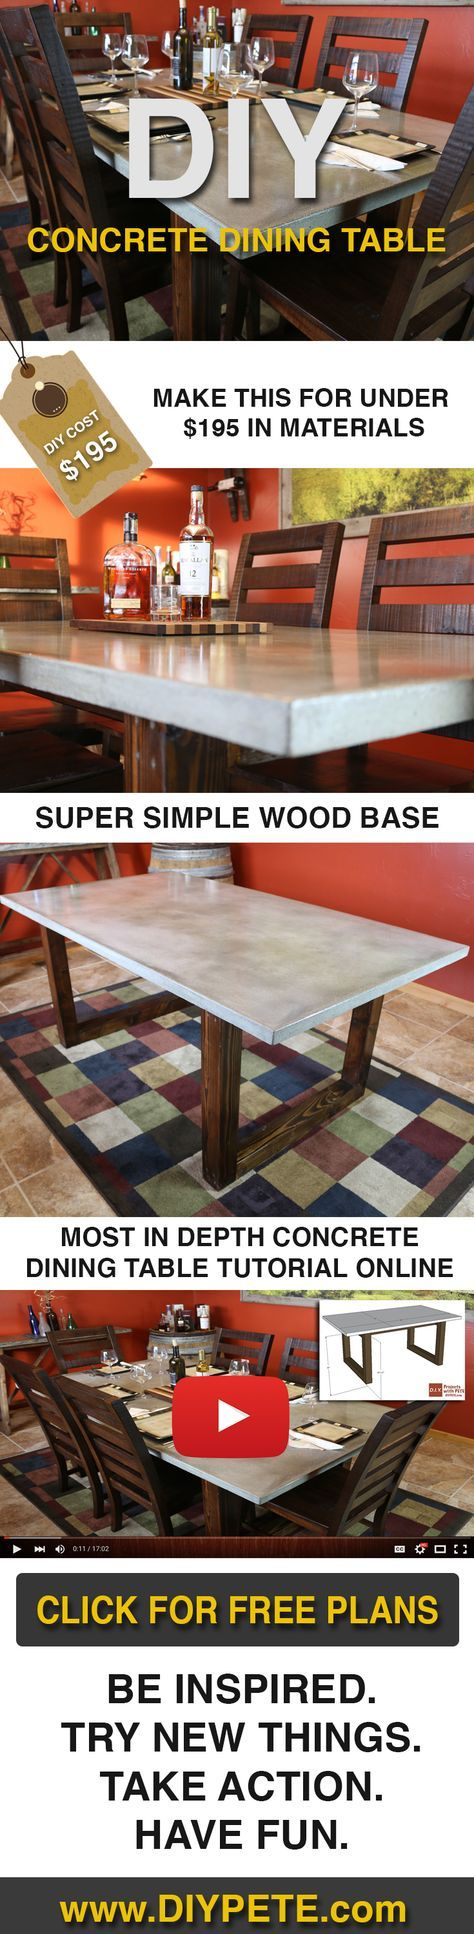 Make This Concrete Dining Table For Under $200! Free DIY Plans, Video  Tutorial,